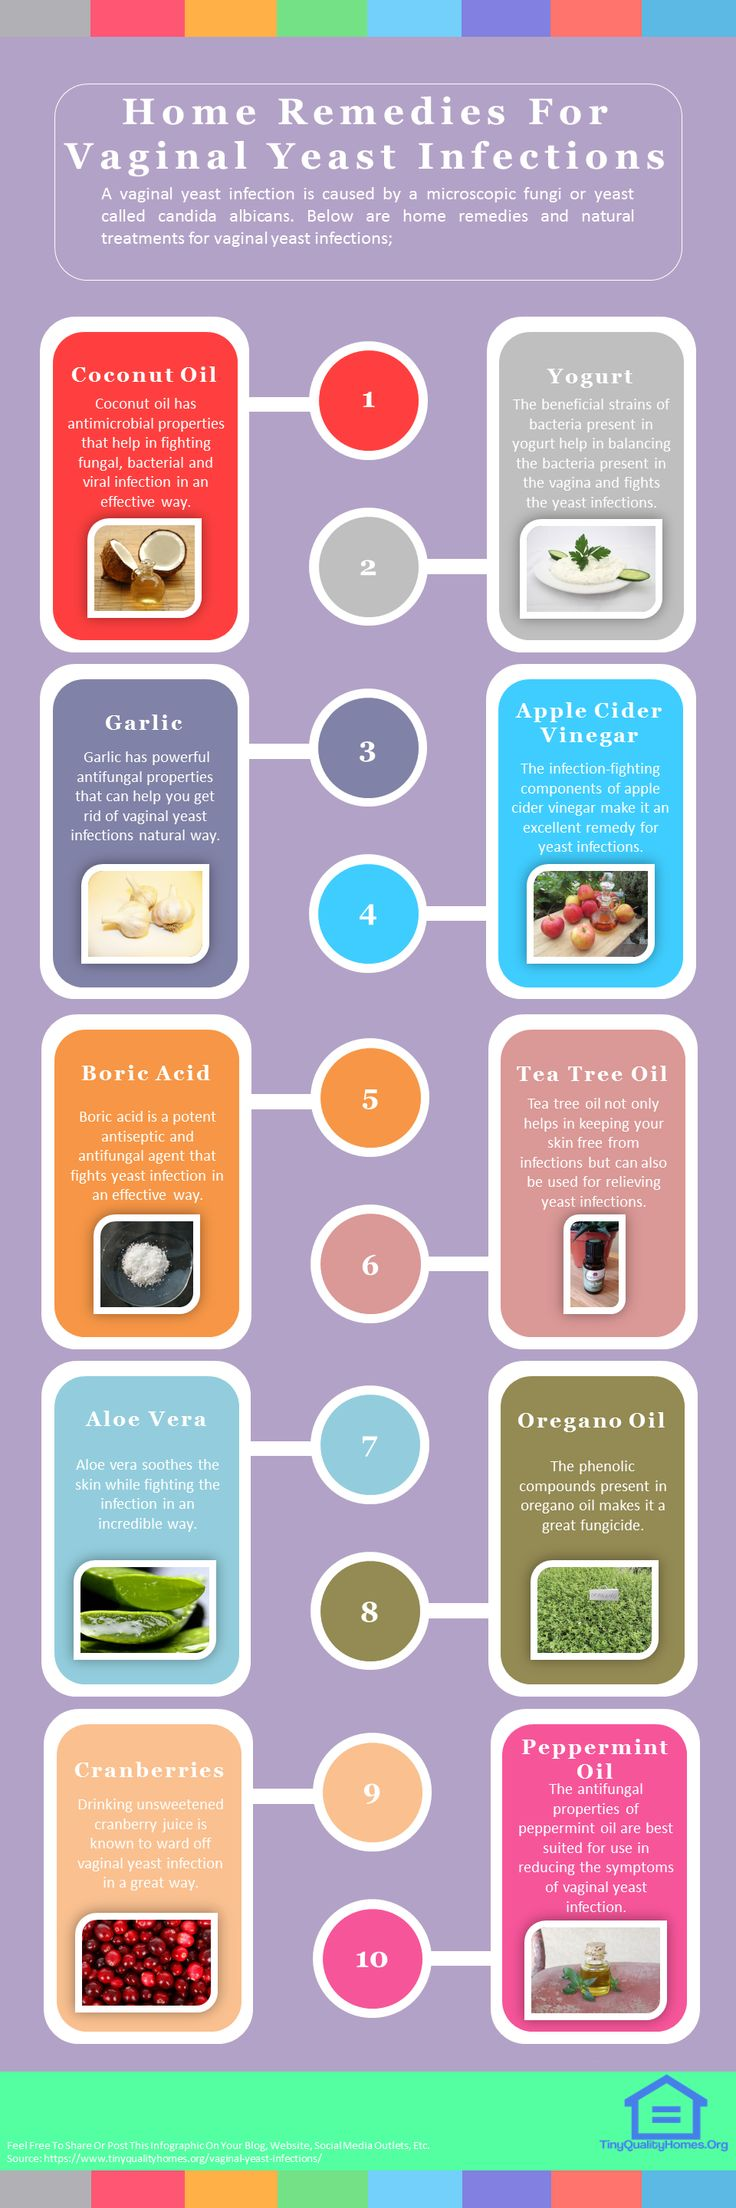 17 Home Remedies For Vaginal Yeast Infections: This Guide Shares Insights On The Following;  Cures, Remedies And Treatments For Vaginal Yeast Infection, Coconut Oil For Yeast Infection, Apple Cider Vinegar For Yeast Infection, How To Get Rid Of A Yeast Infection In 24 Hours, Yeast Infection Treatment Pill, Garlic For Yeast Infection Relief, How Long Does A Yeast Infection Last, What Causes Yeast Infections, Oral Thrush Treatments, Etc.